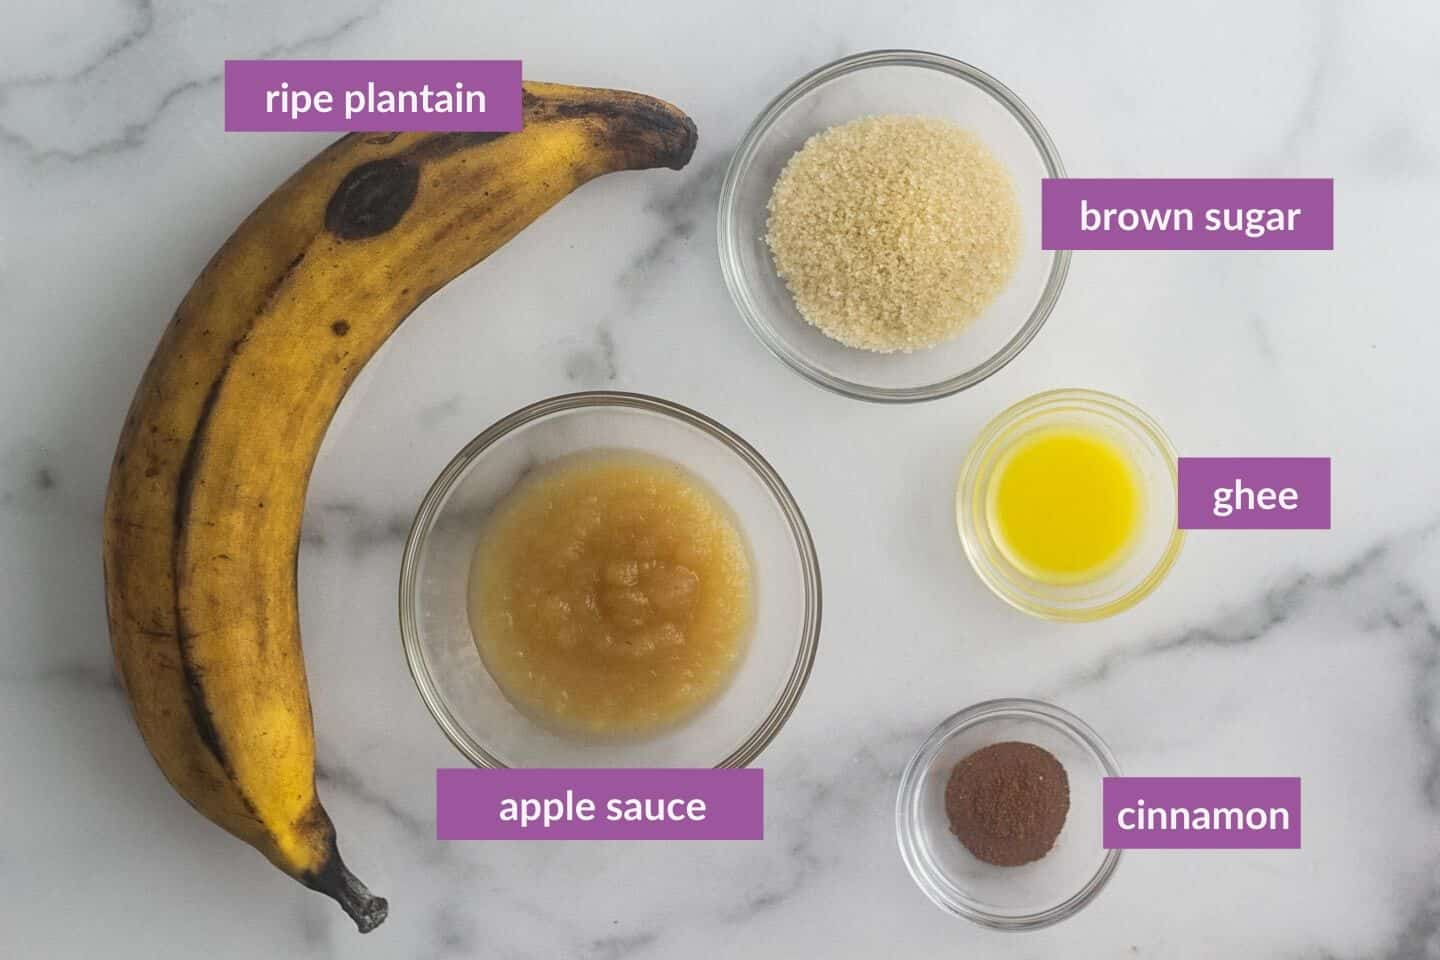 caramelized plantain ingredients